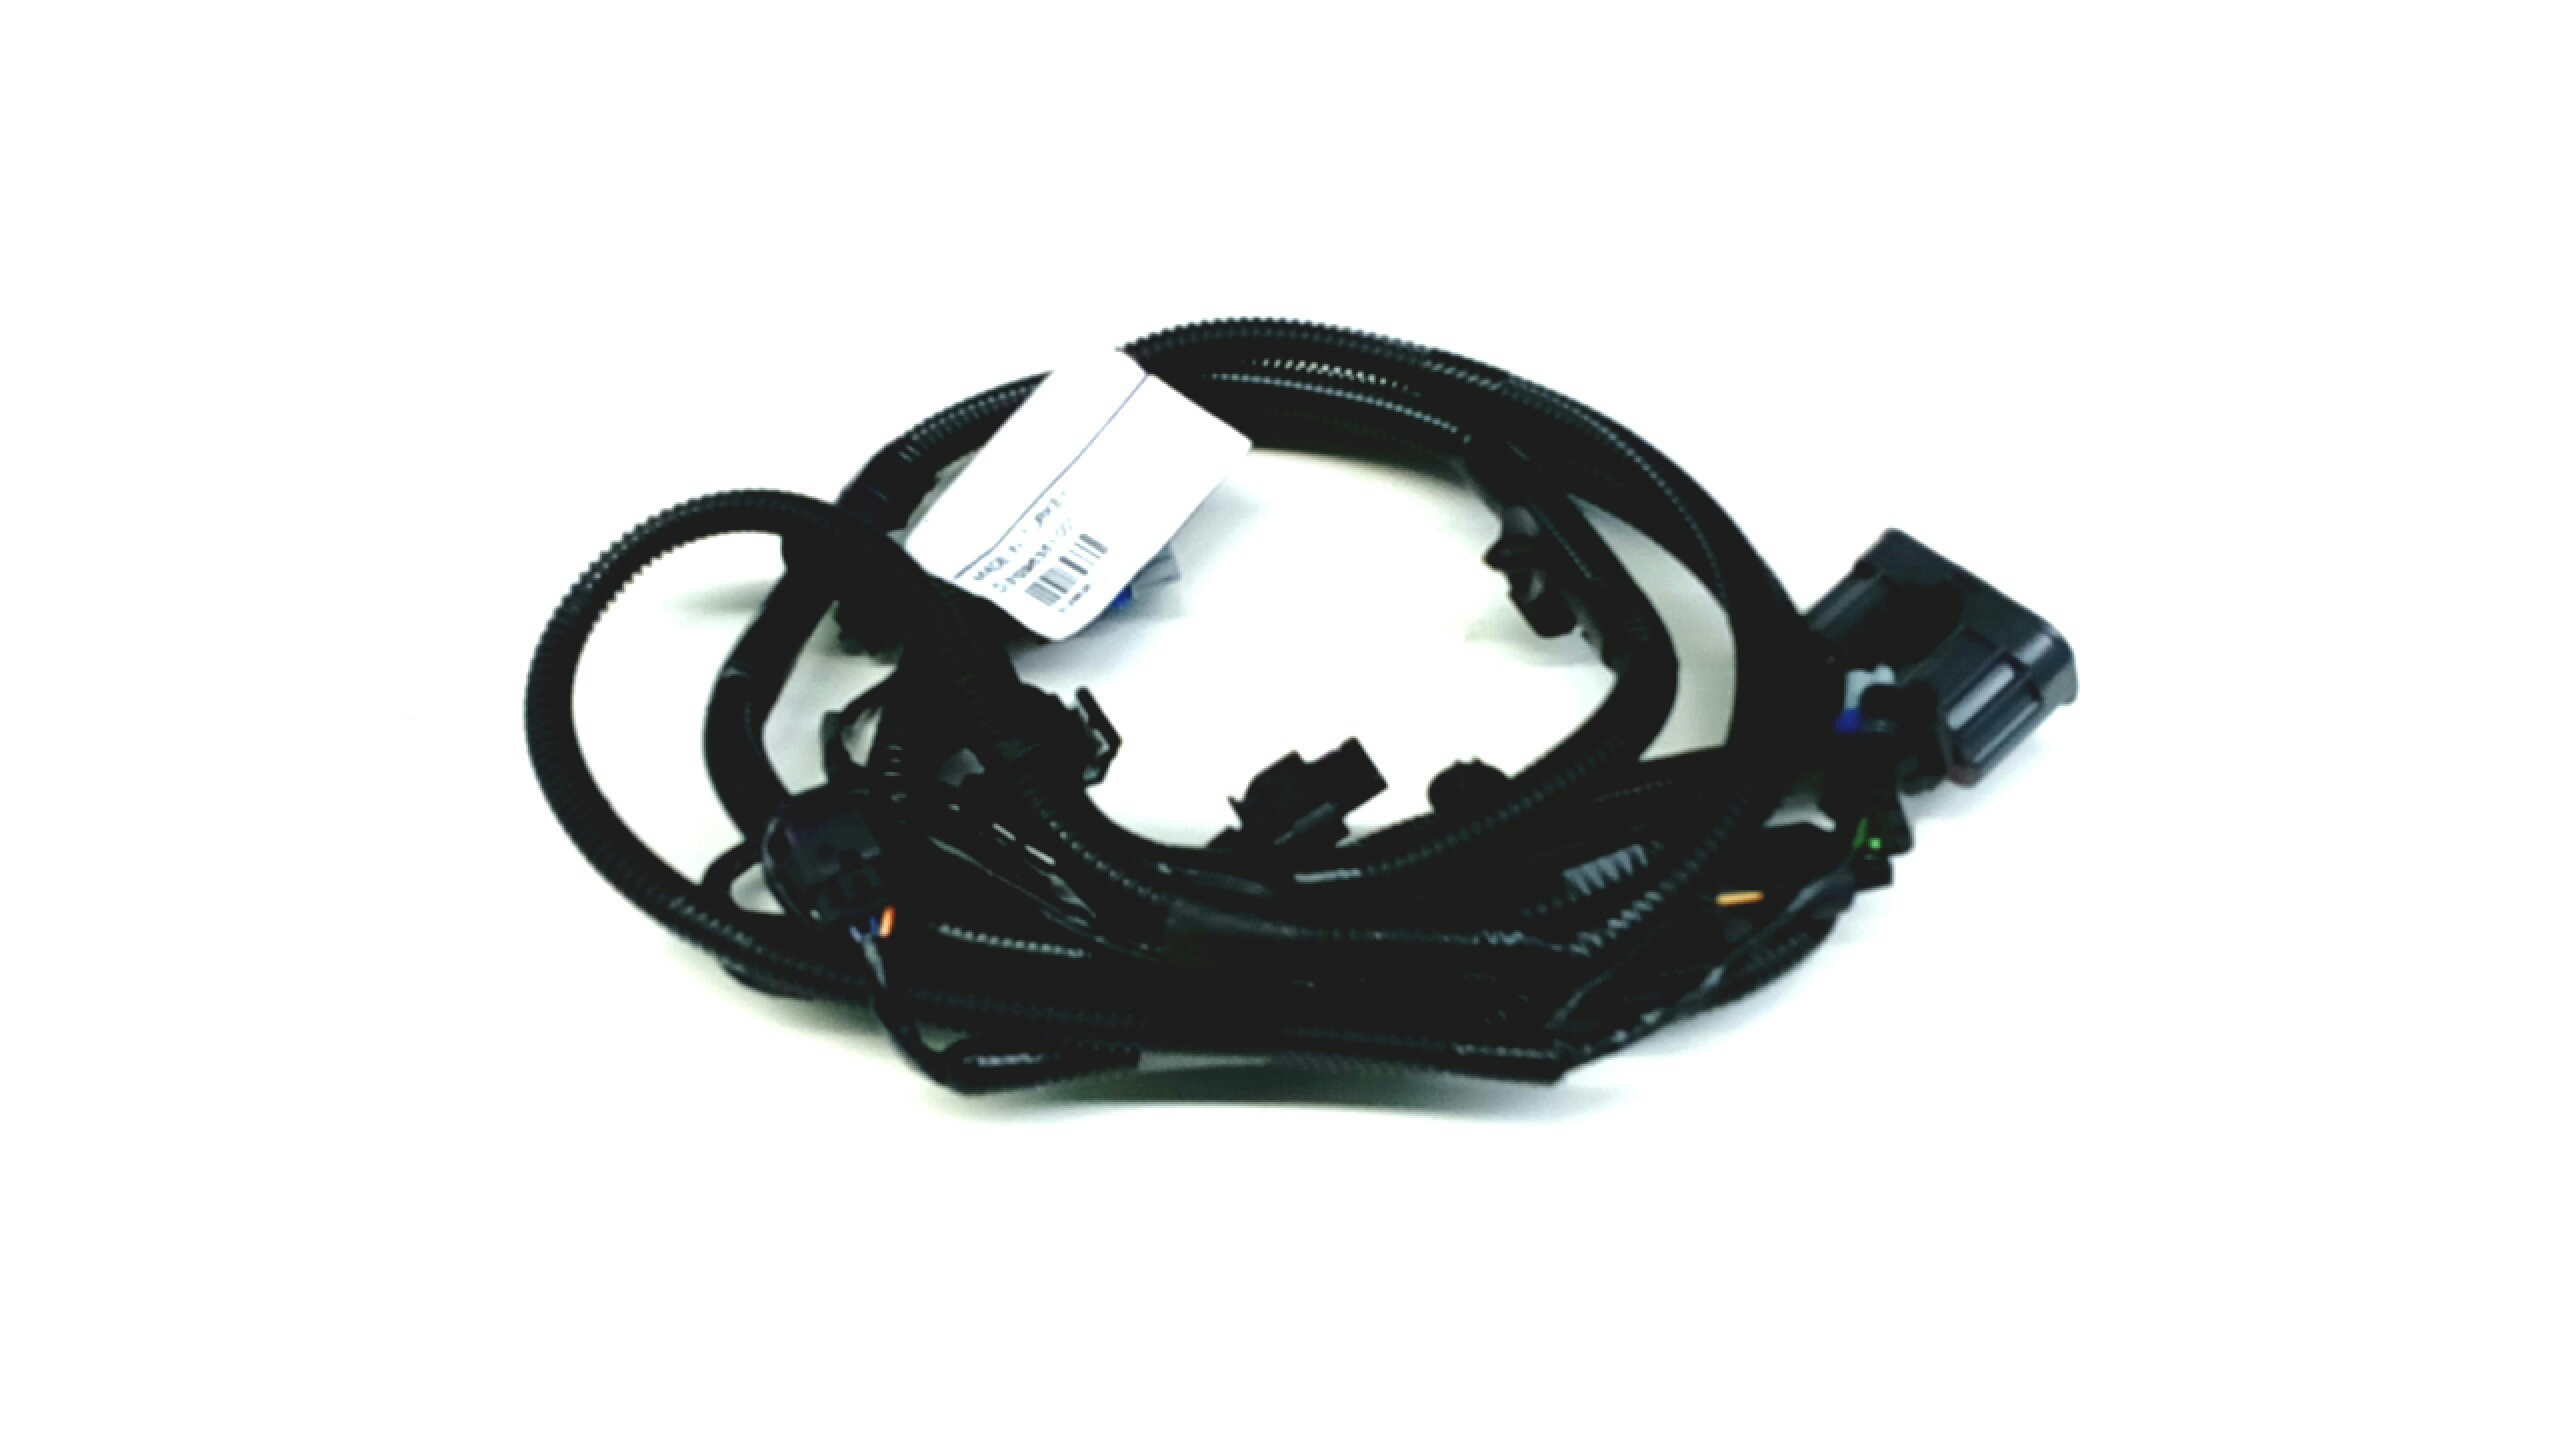 Volvo Xc60 Wiring Harness  Cable Harness Bumper  Park Assist   Front   Ch -179554  Ch